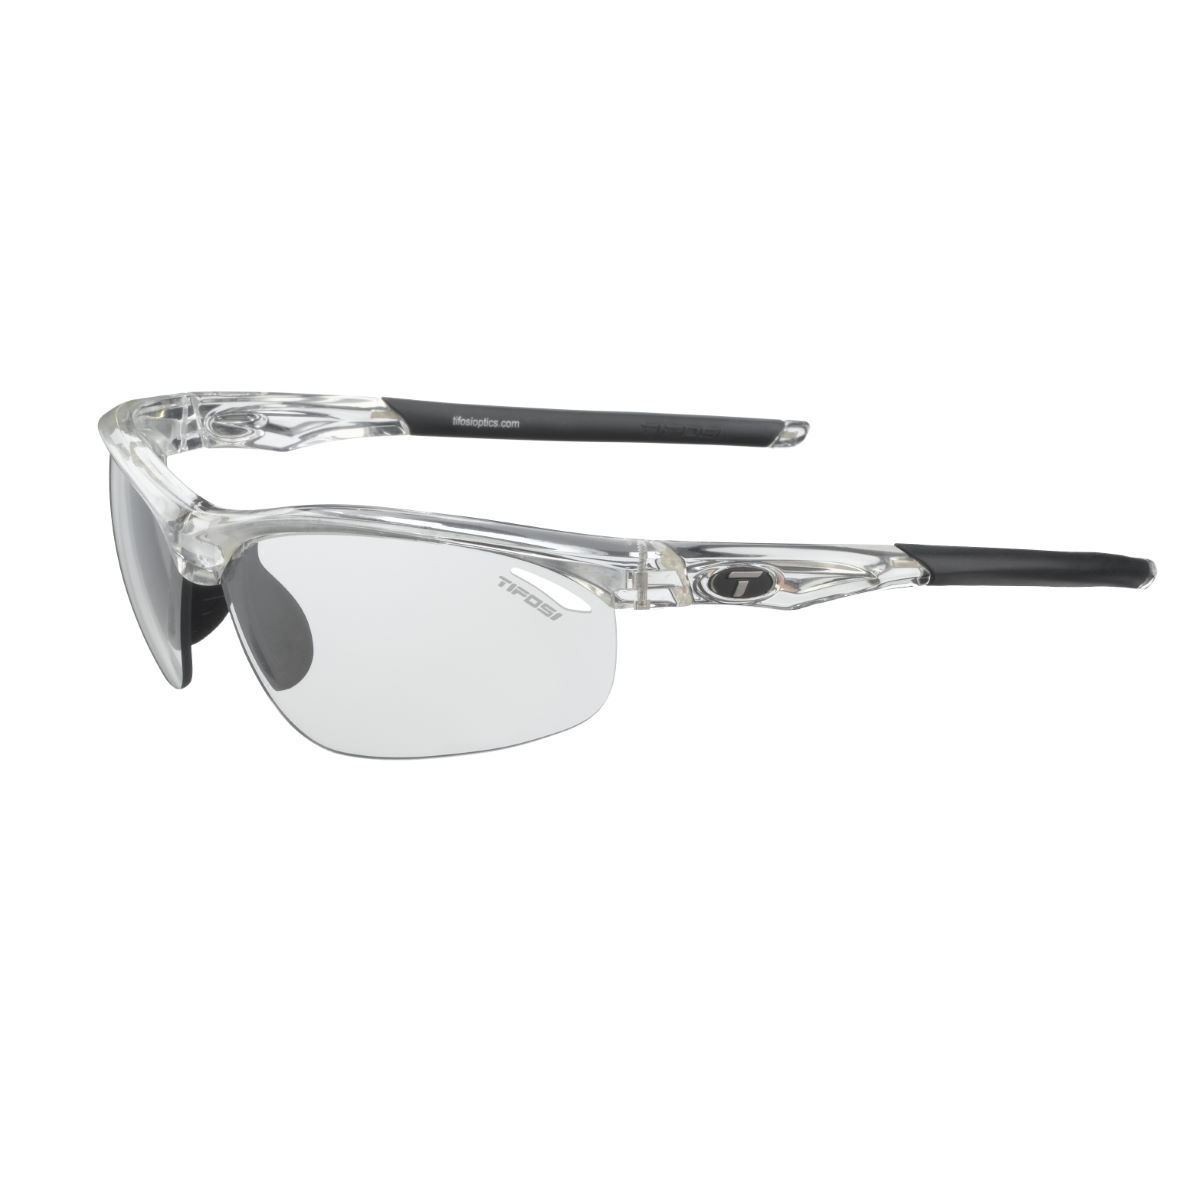 Image of Tifosi Eyewear Veloce Fototec Light Night Lens Sunglasses Sunglasses